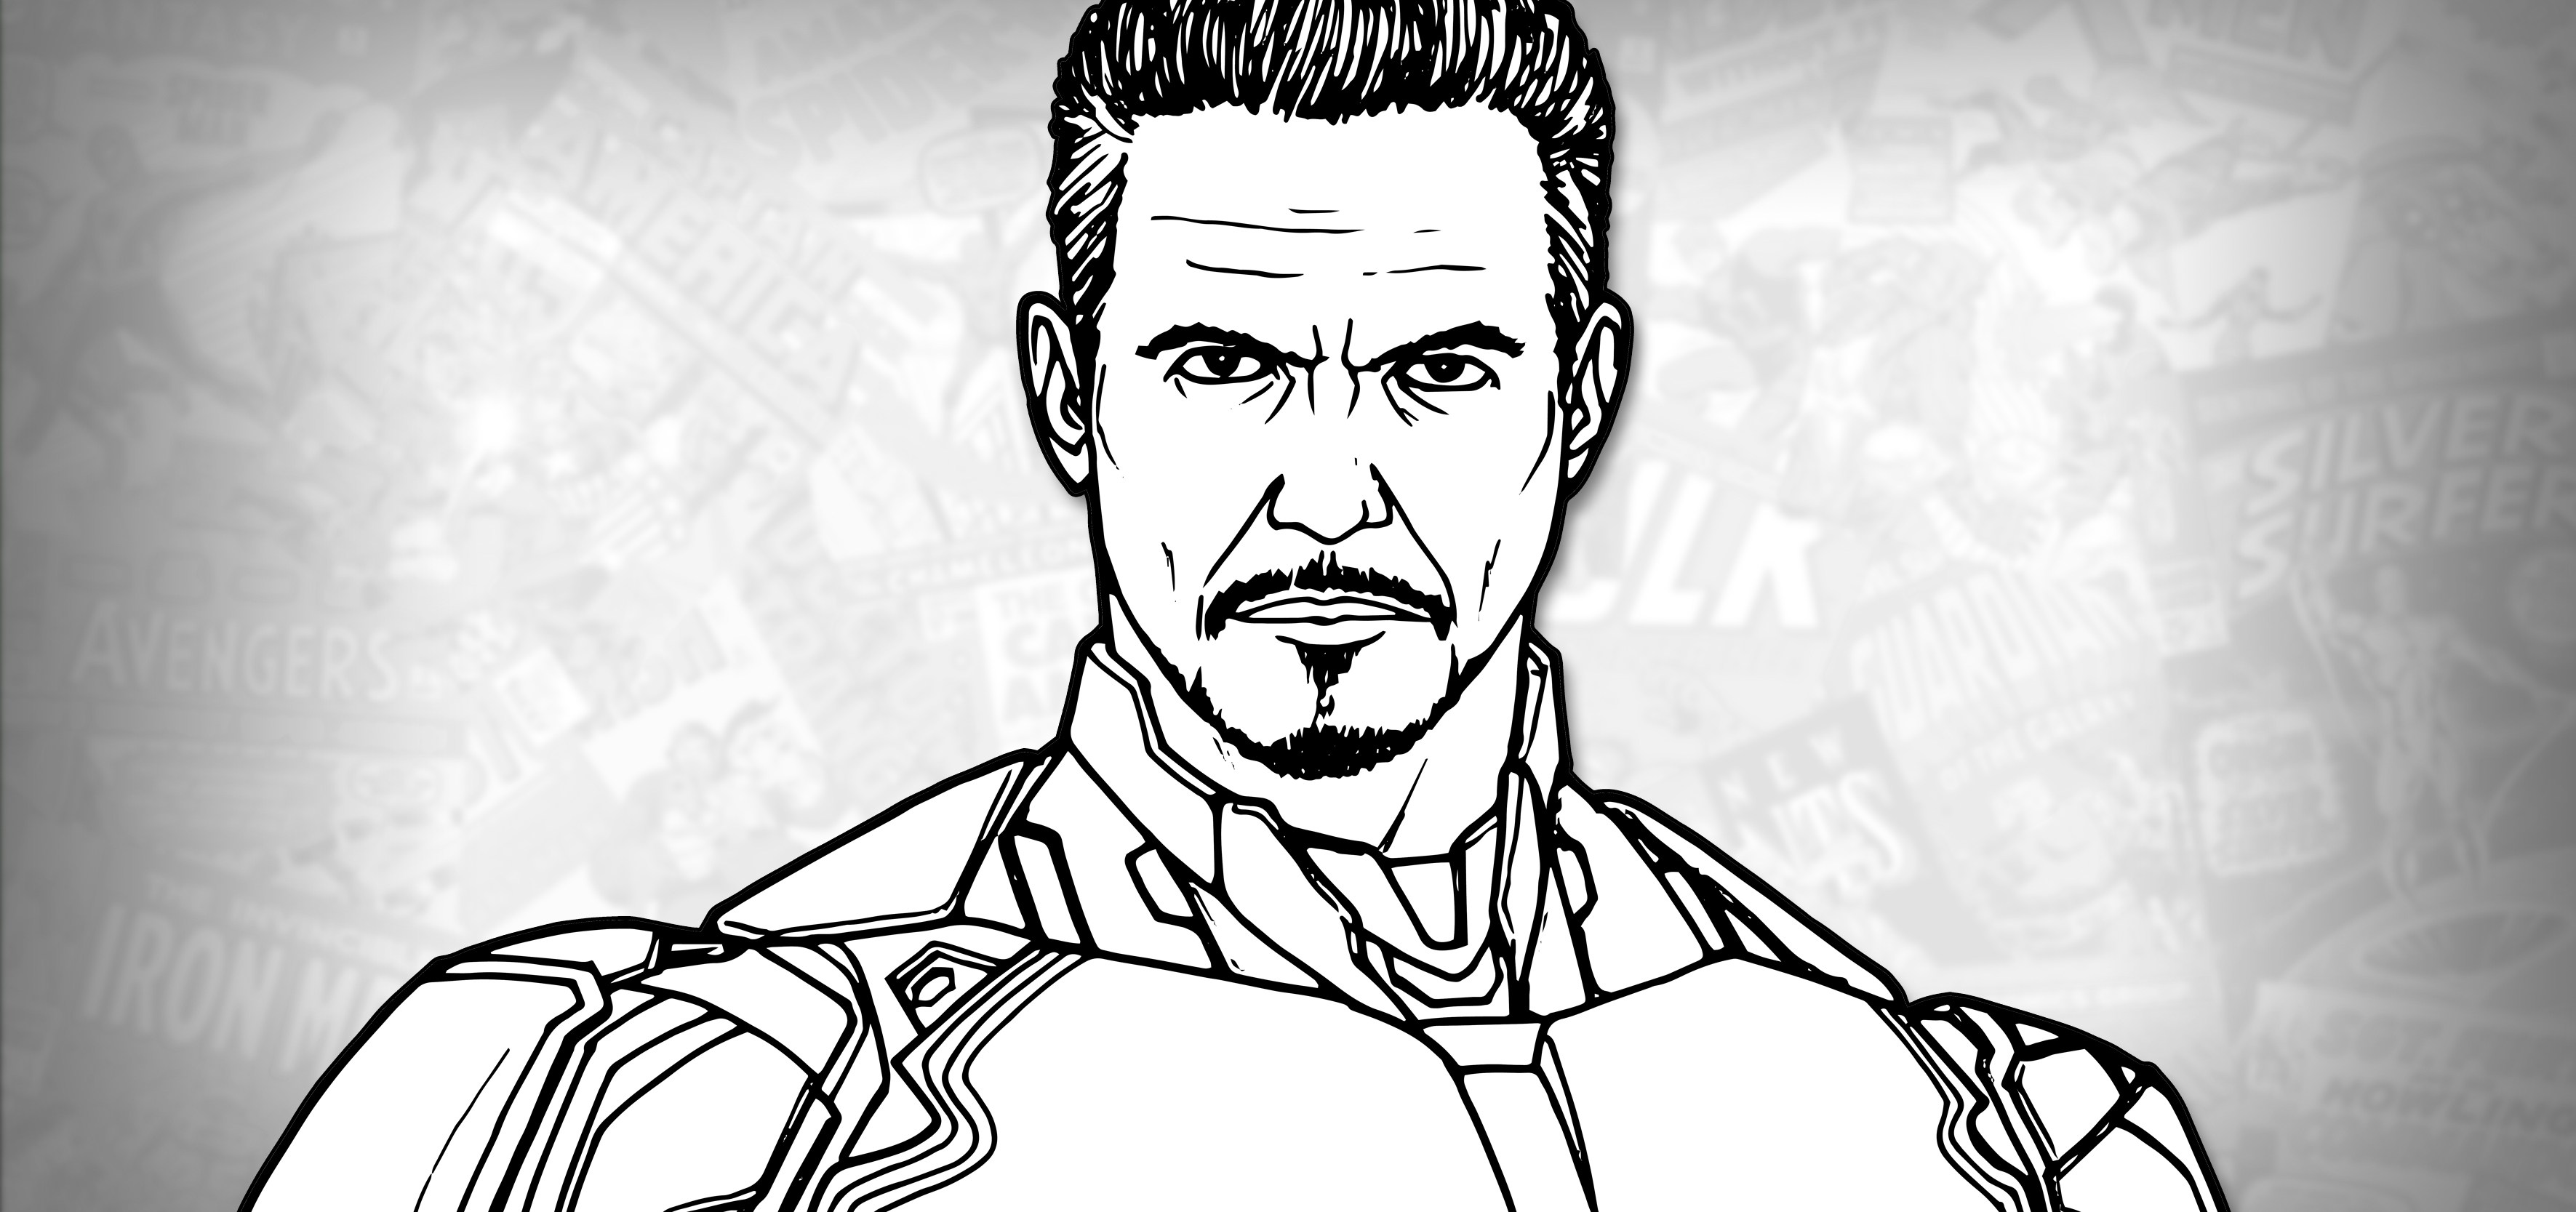 avengers drawing pictures how to draw iron man avengers endgame drawing tutorial avengers drawing pictures